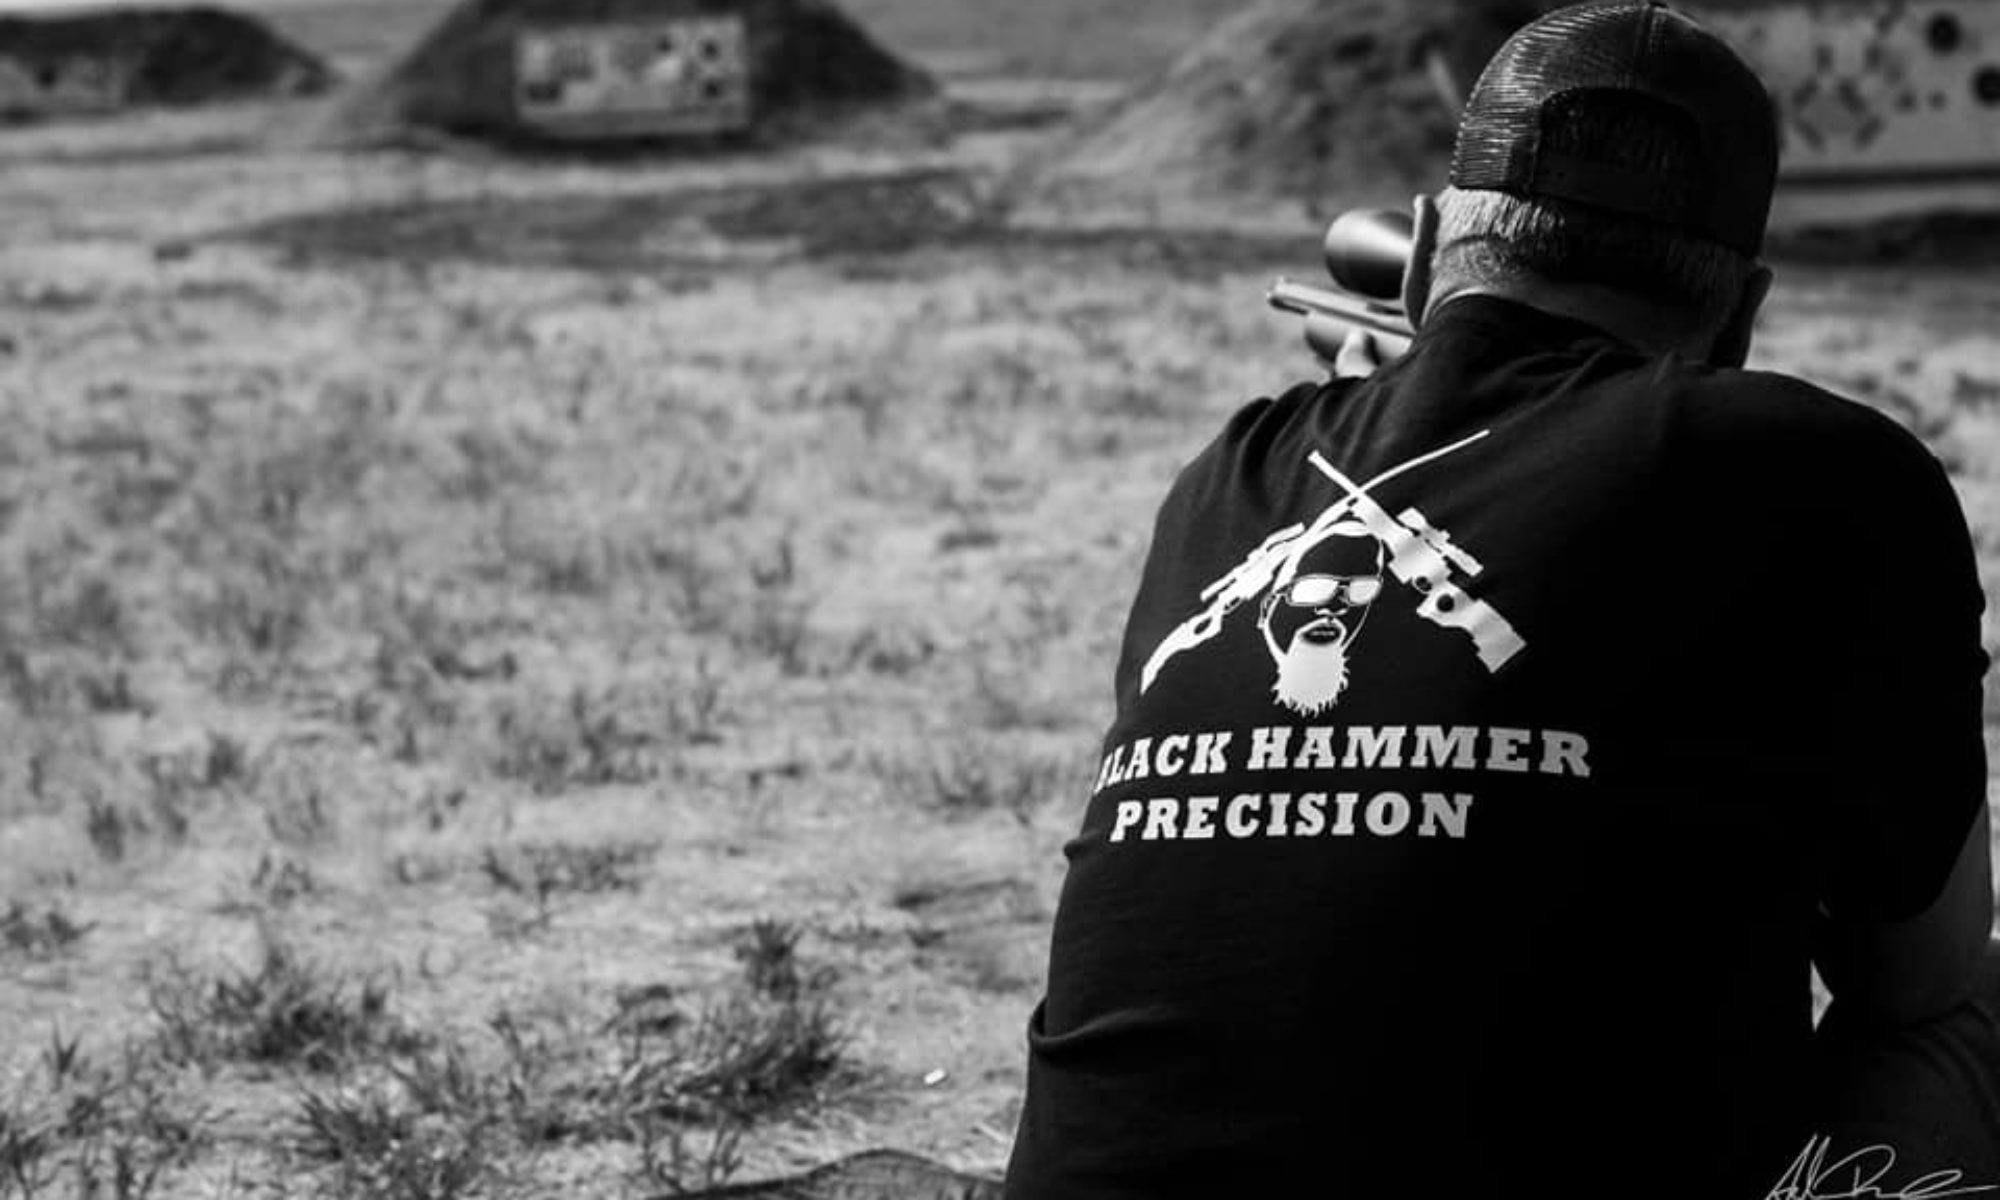 Black Hammer Tacti-Cool Precision